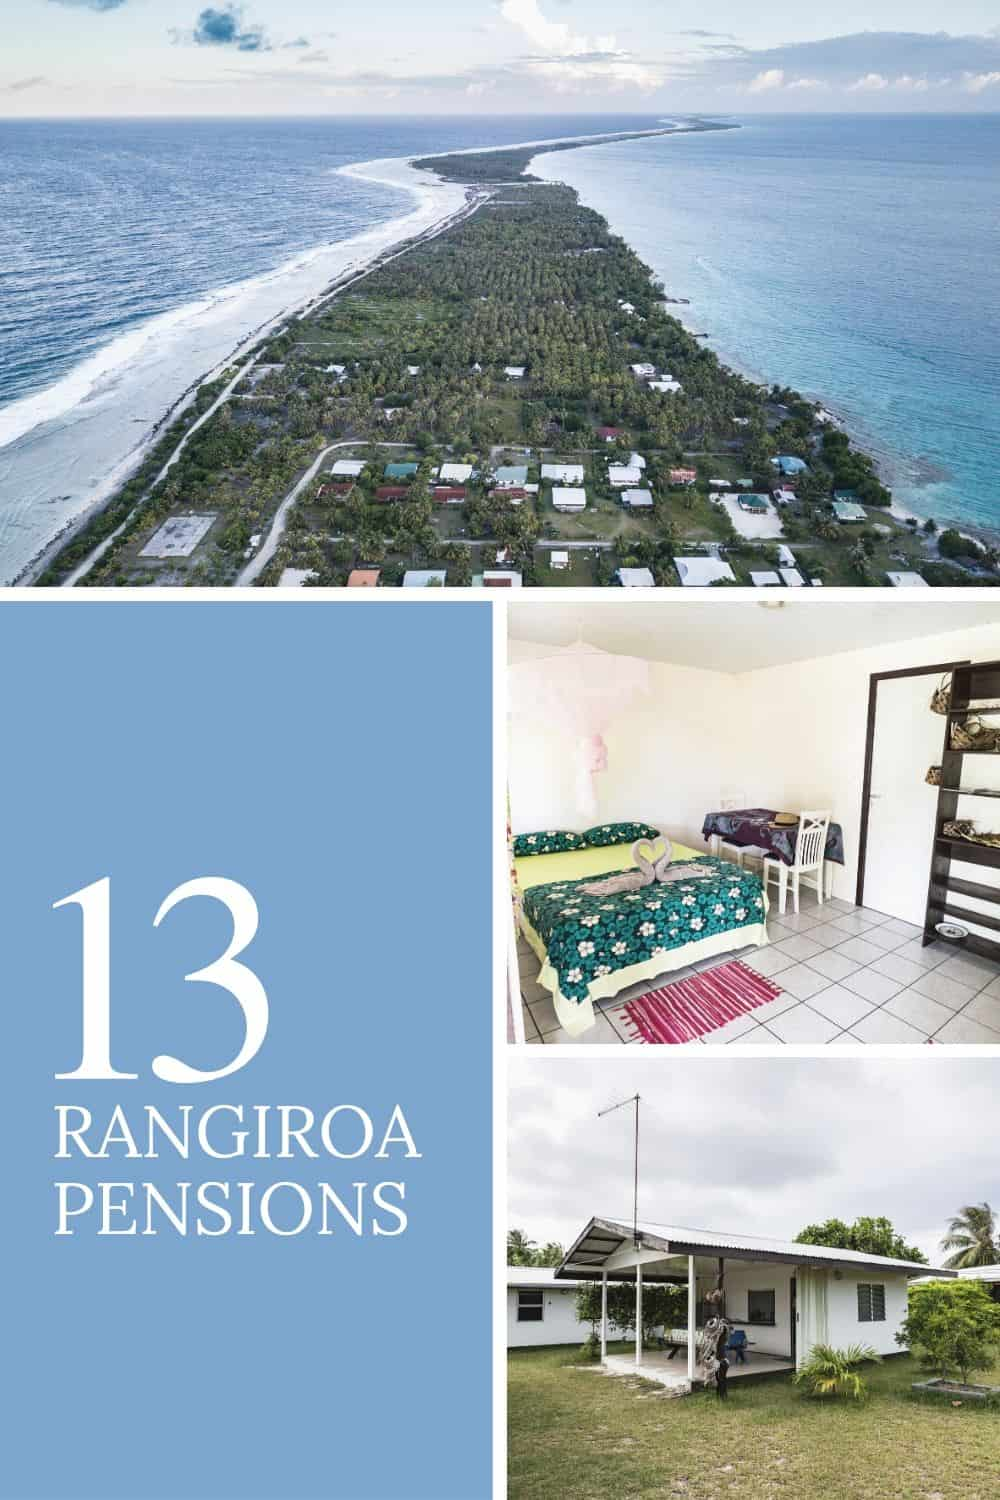 French Polynesia Rangiroa Pensions - Where To Stay Guide